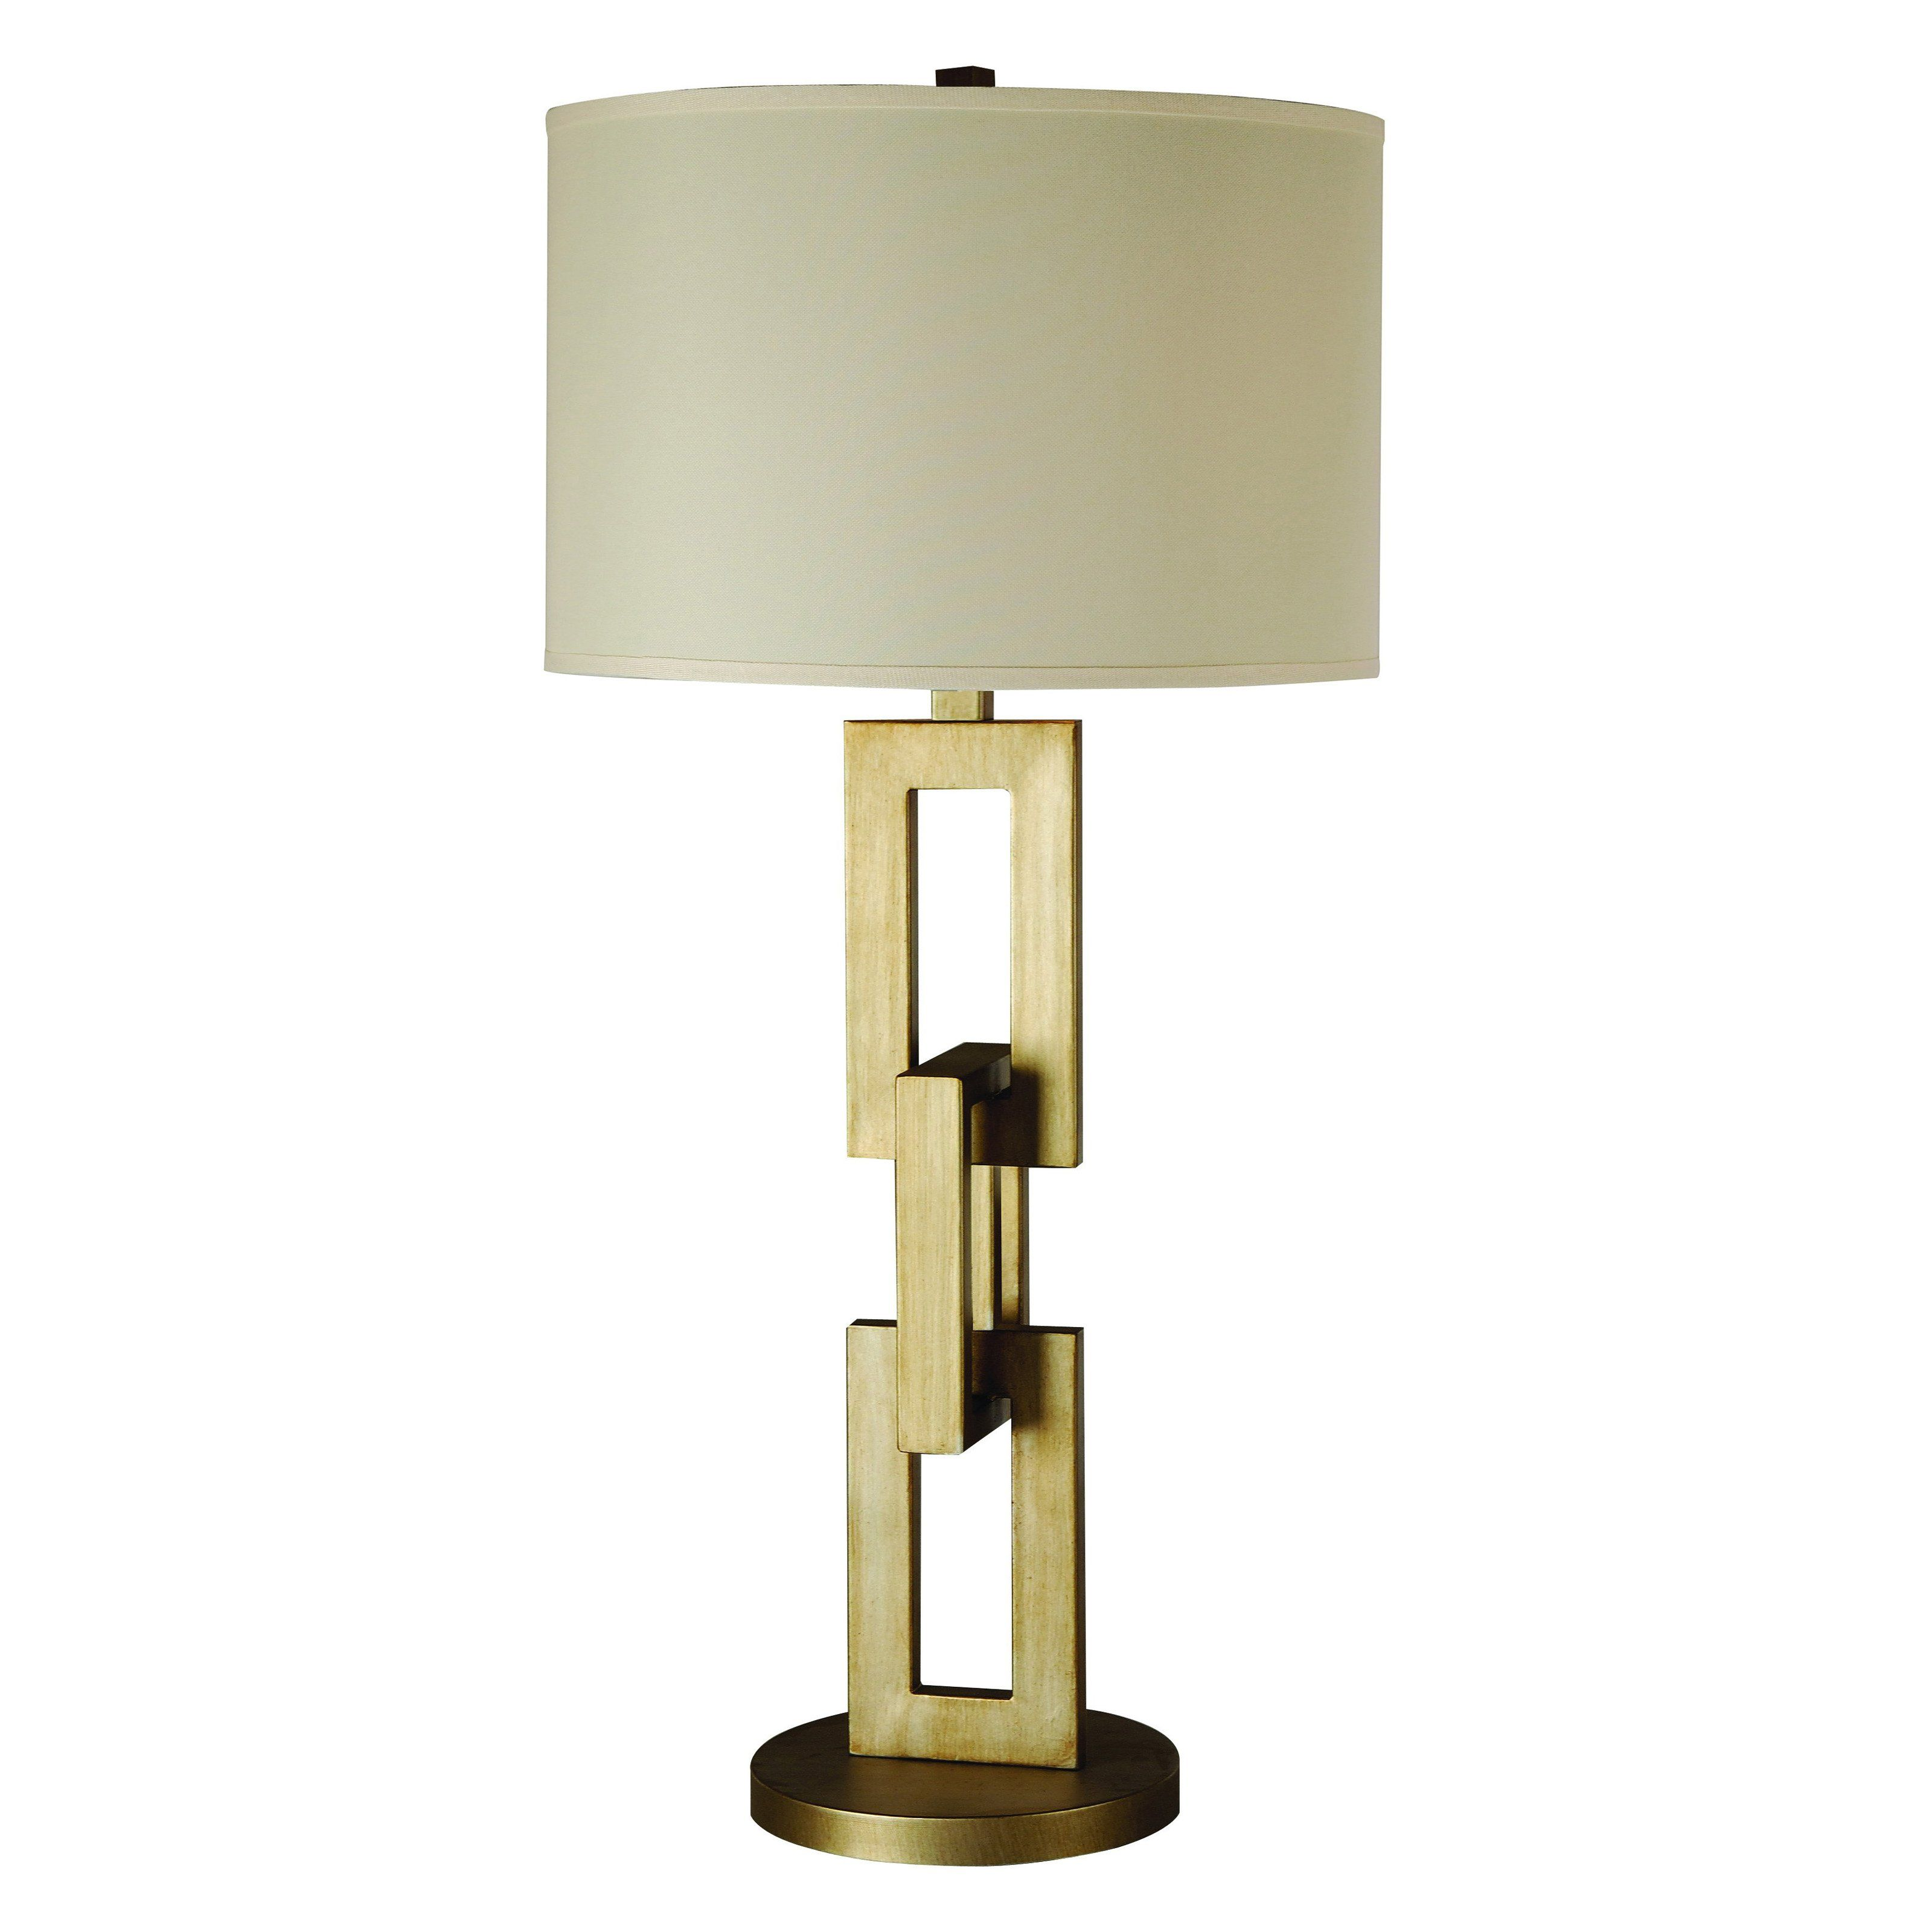 trend lighting tt linque table lamp  about trend lightingfor  - trend lighting tt linque table lamp  about trend lightingfor nearly years trend lighting